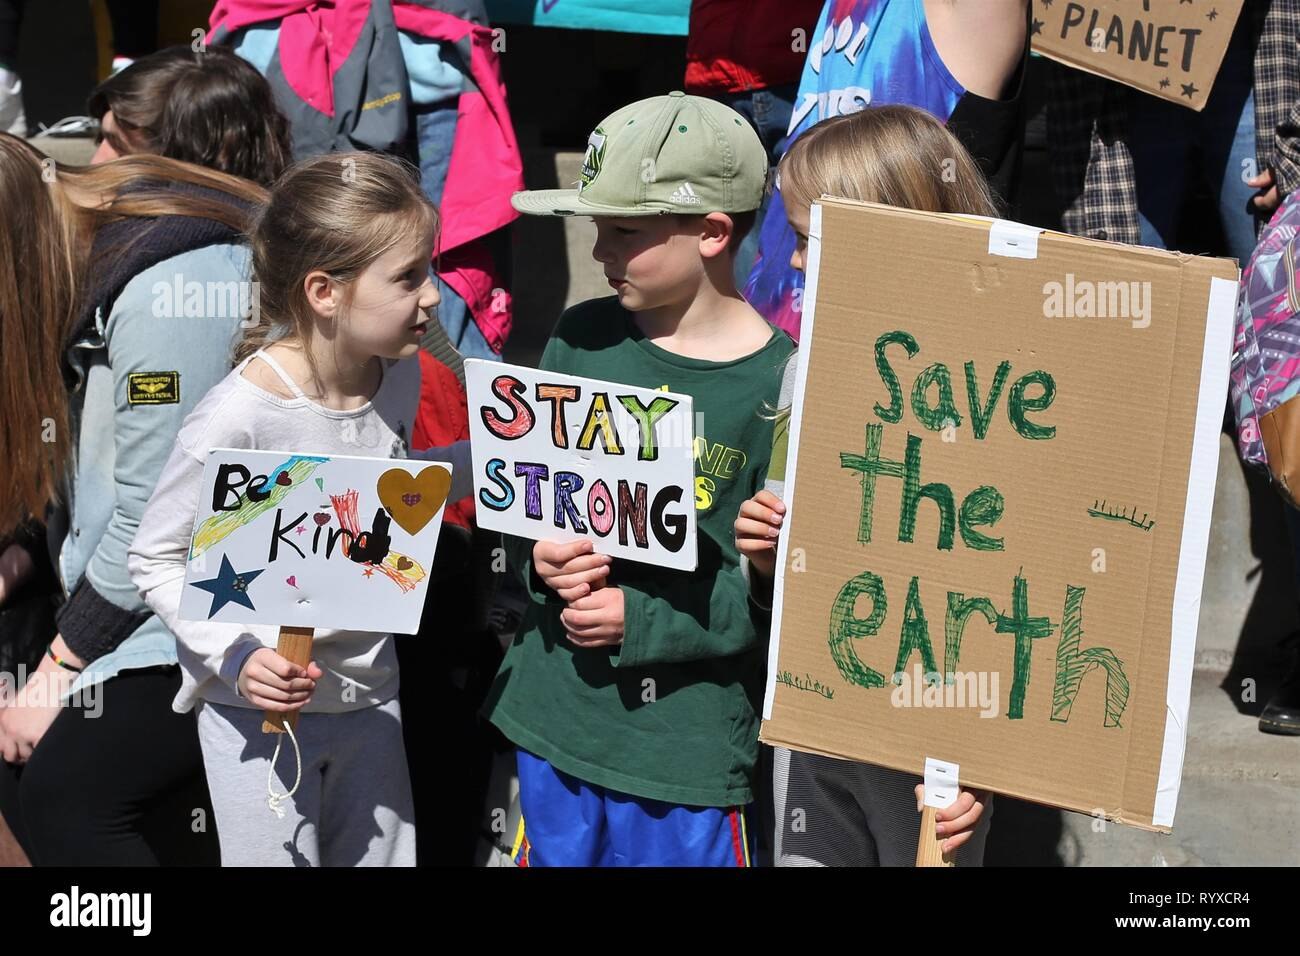 at the Global Climate Strike rally in Eugene, Oregon, USA. - Stock Image